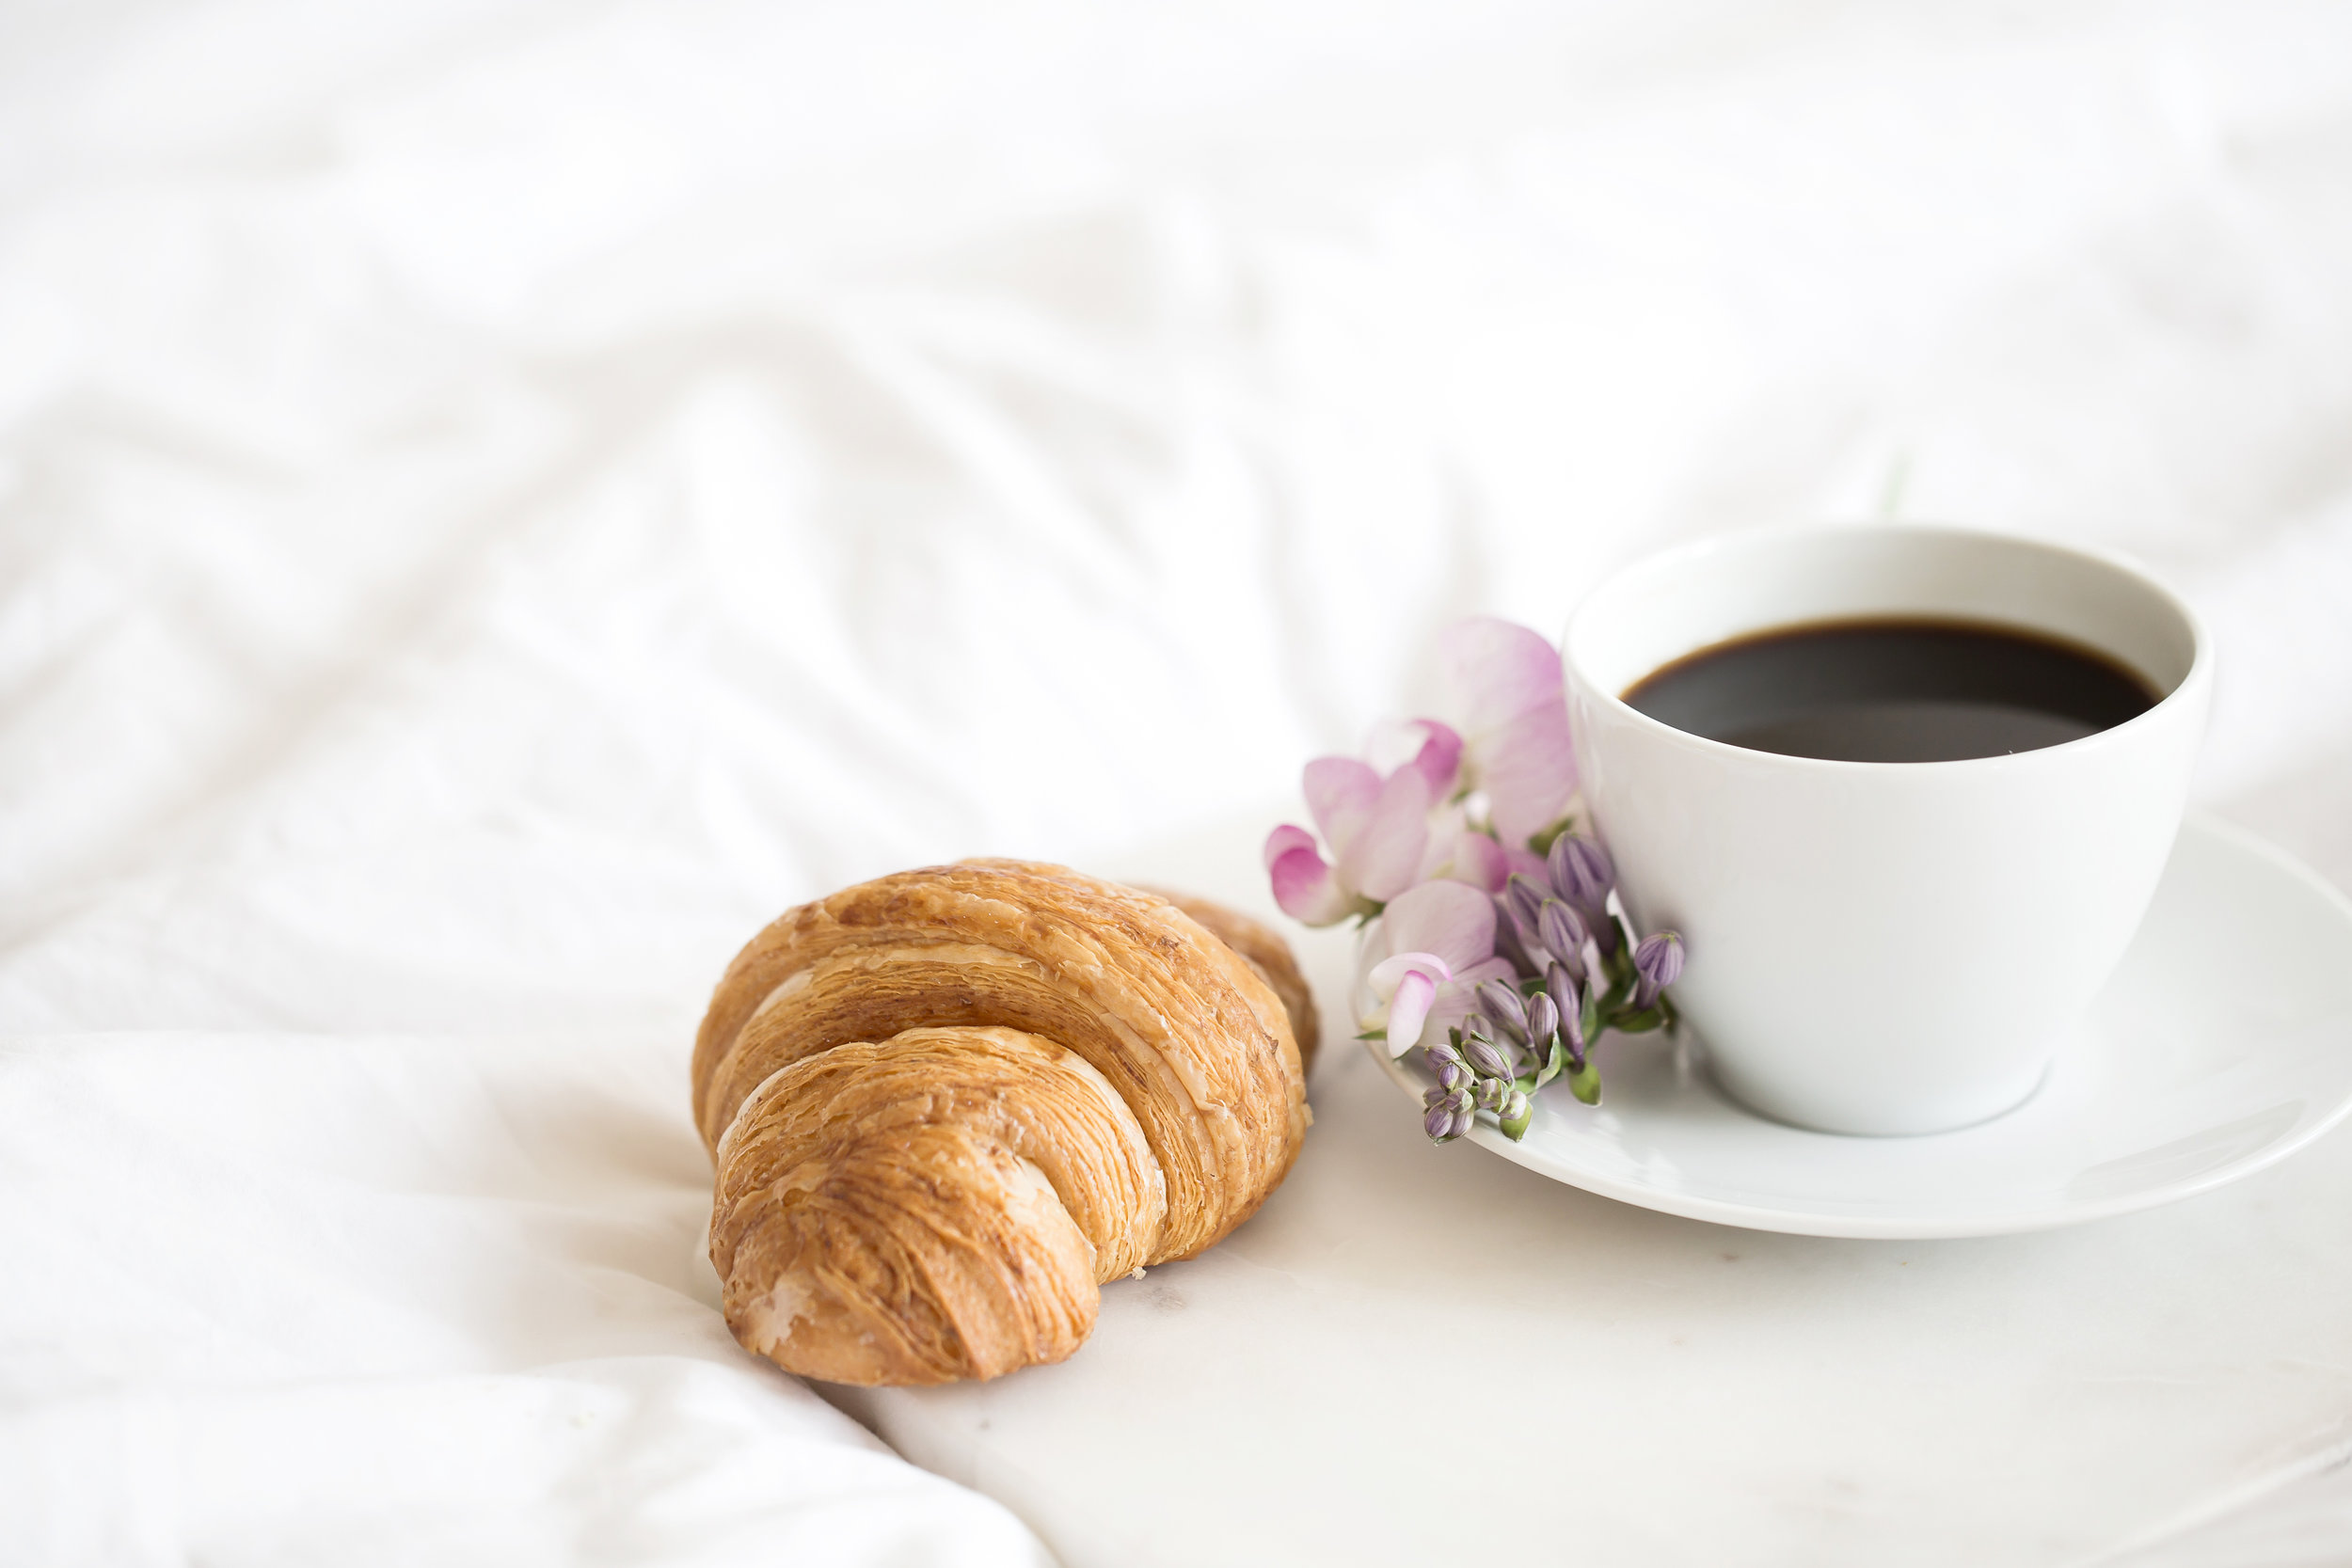 haute-chocolate-styled-stock-photography-simple-mornings-3-final.jpg